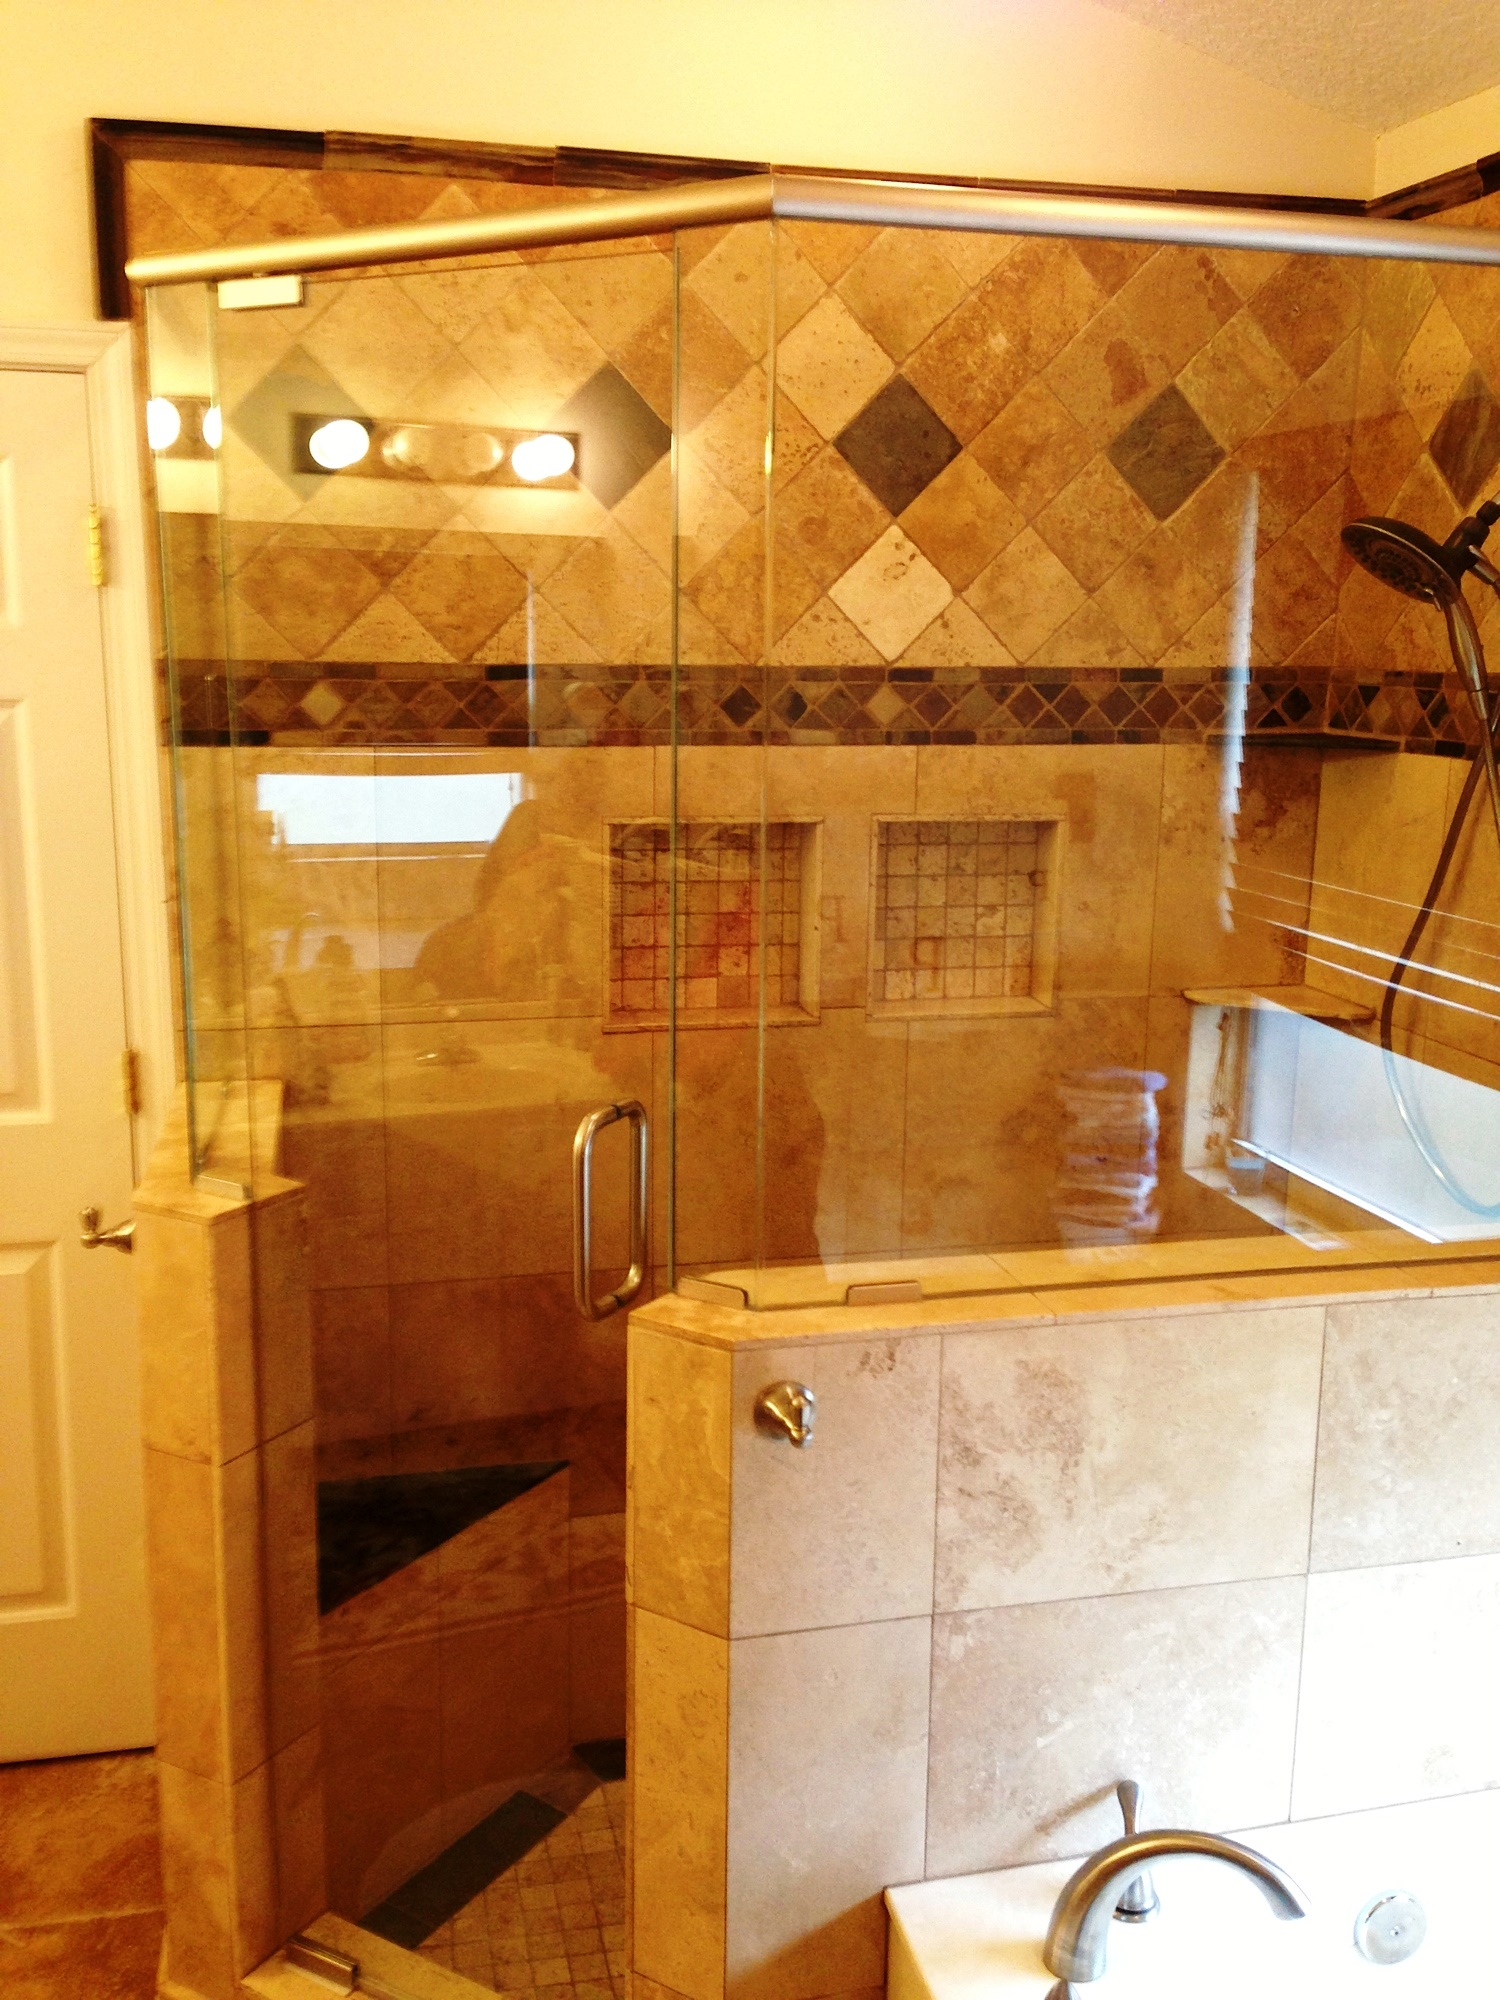 BATHROOMS/Shower_02-23-13-2.jpg